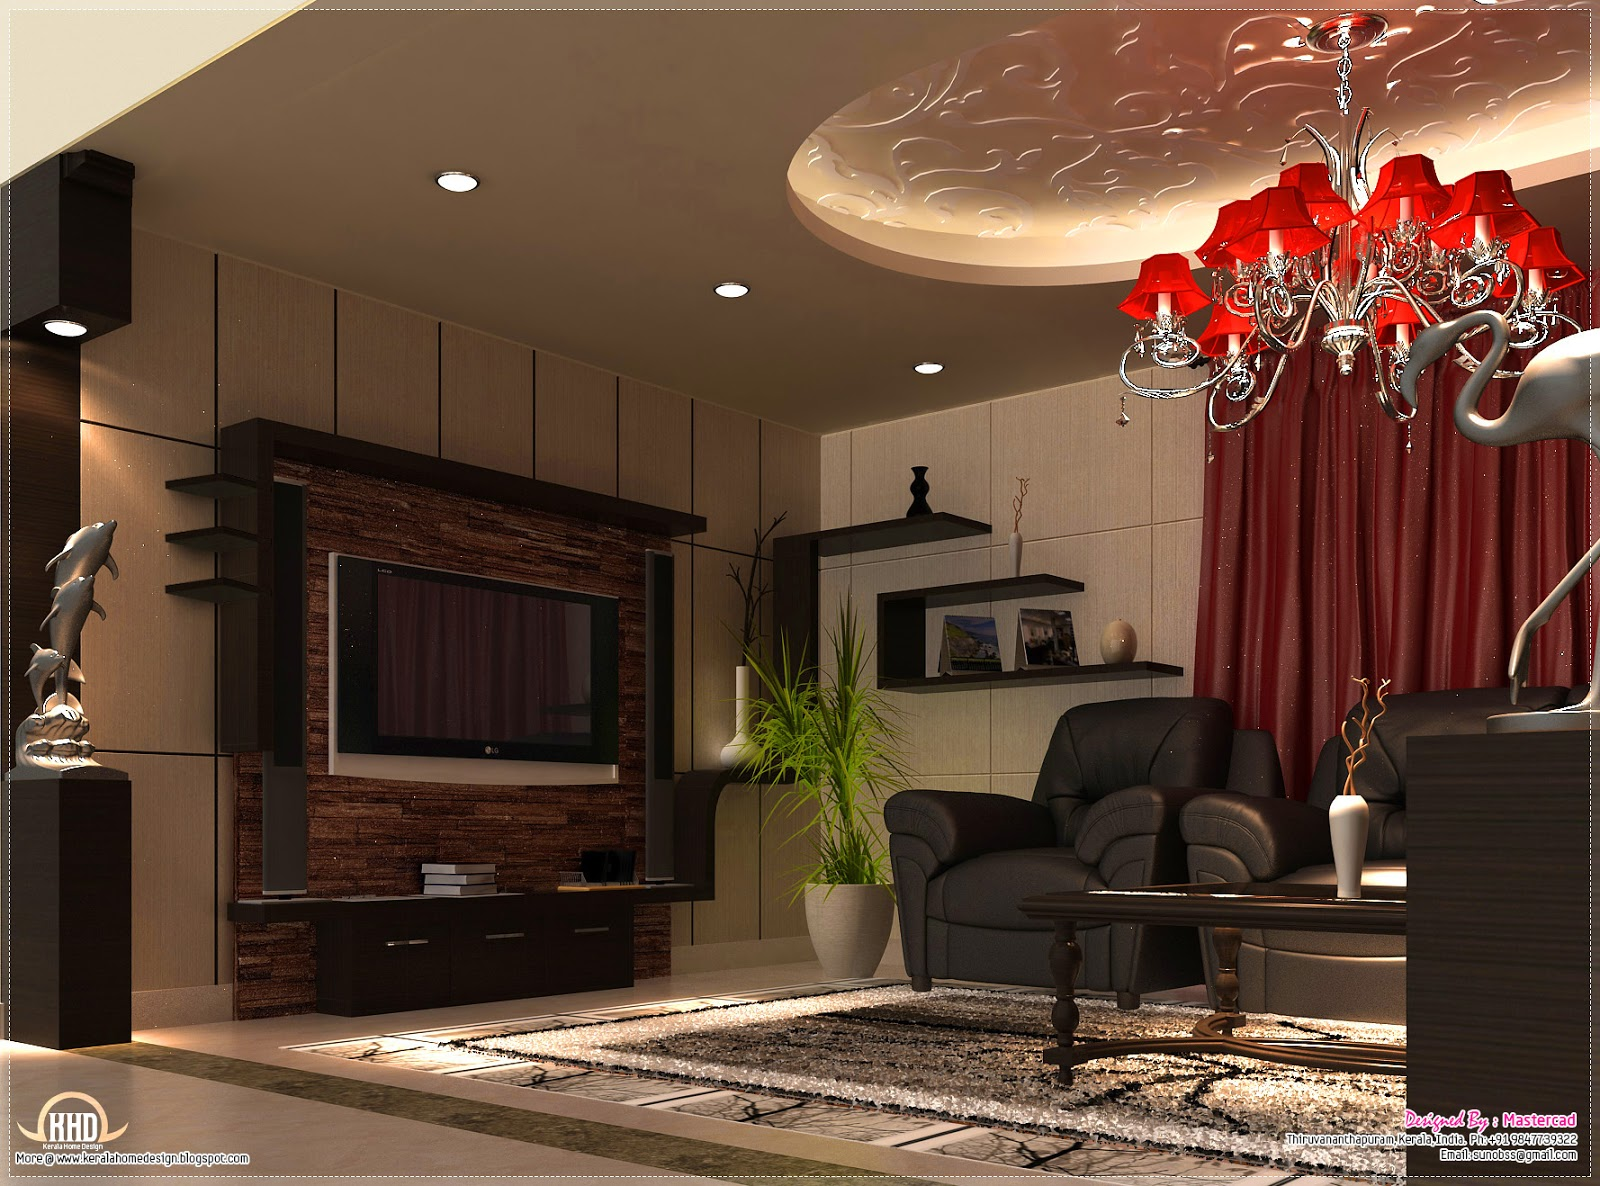 Interior design ideas kerala home design and floor plans Living room interior design pictures india